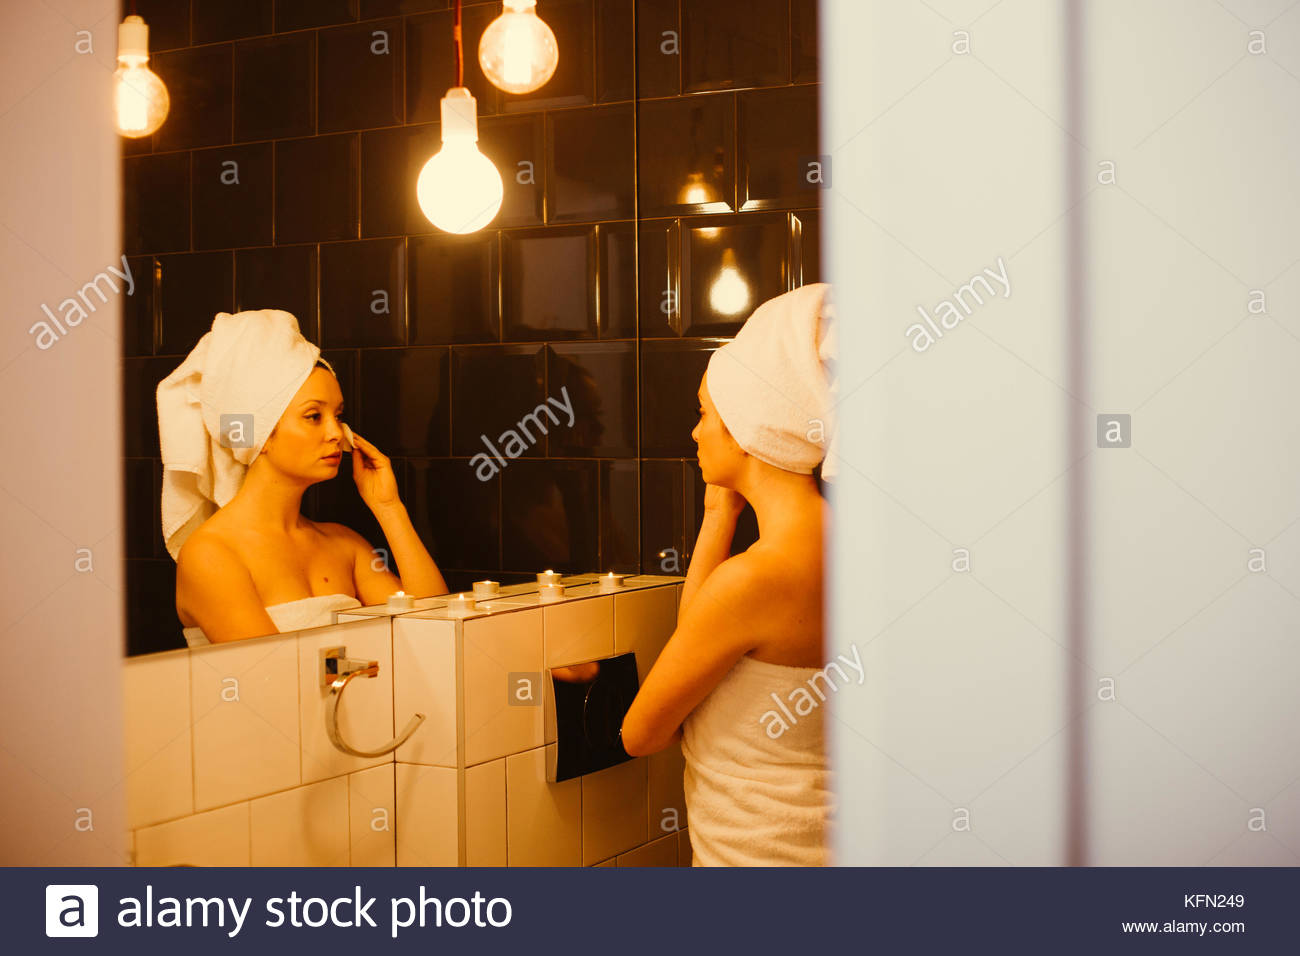 Young women doing her evening makeup routine - Stock Image